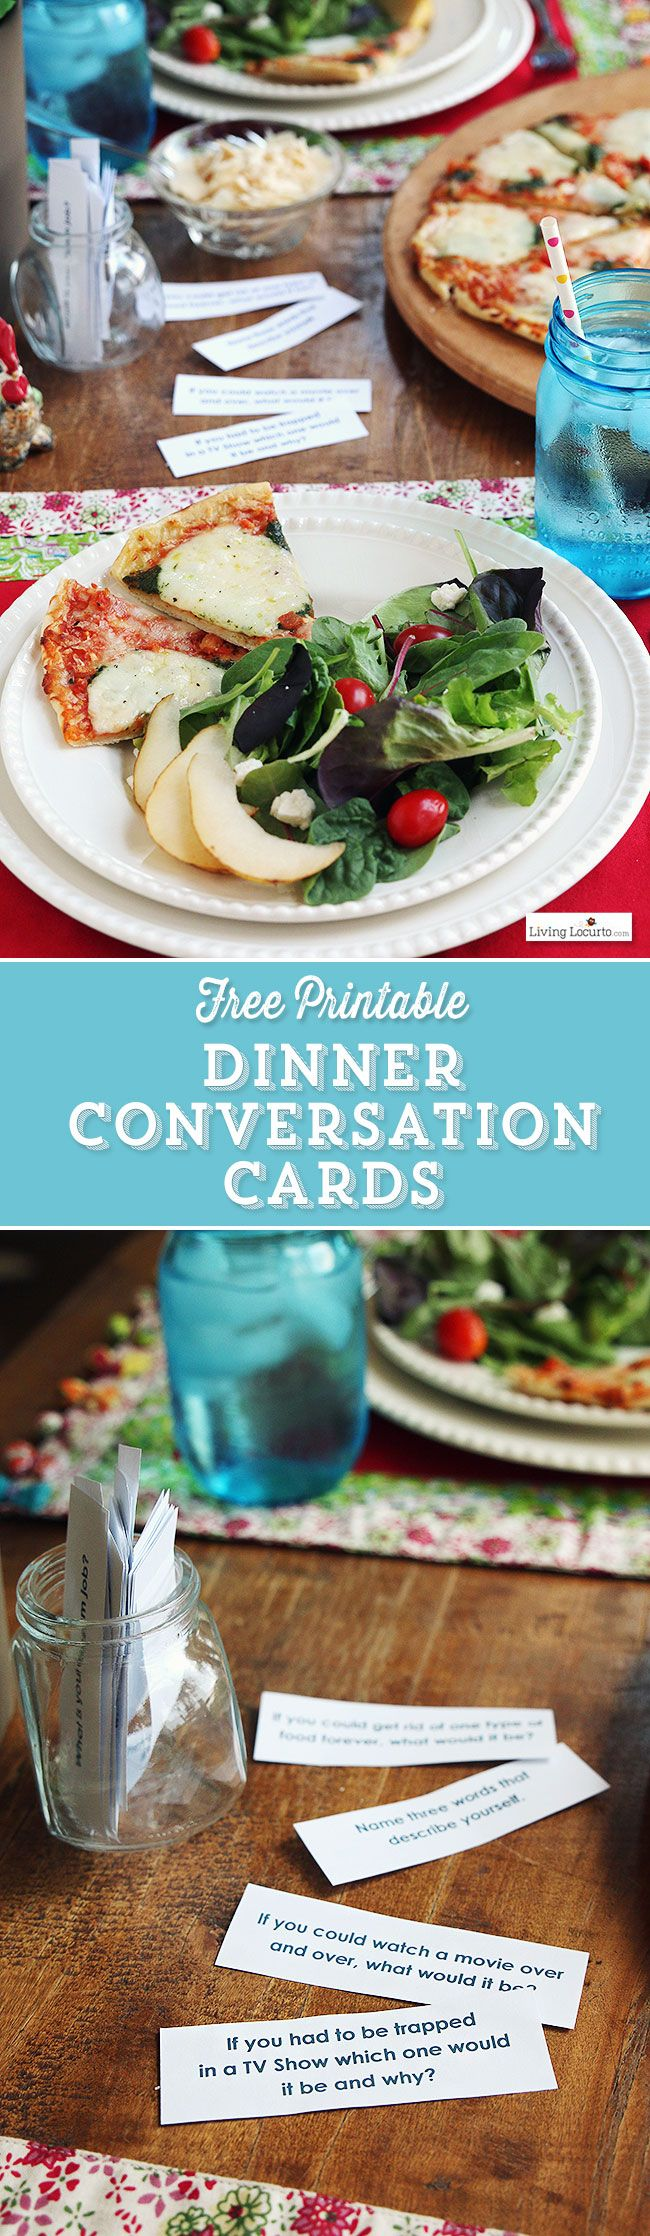 48 Free Printable Dinner Conversation Starter Cards. Perfect meal idea for your family or dinner party! by @livinglocurto